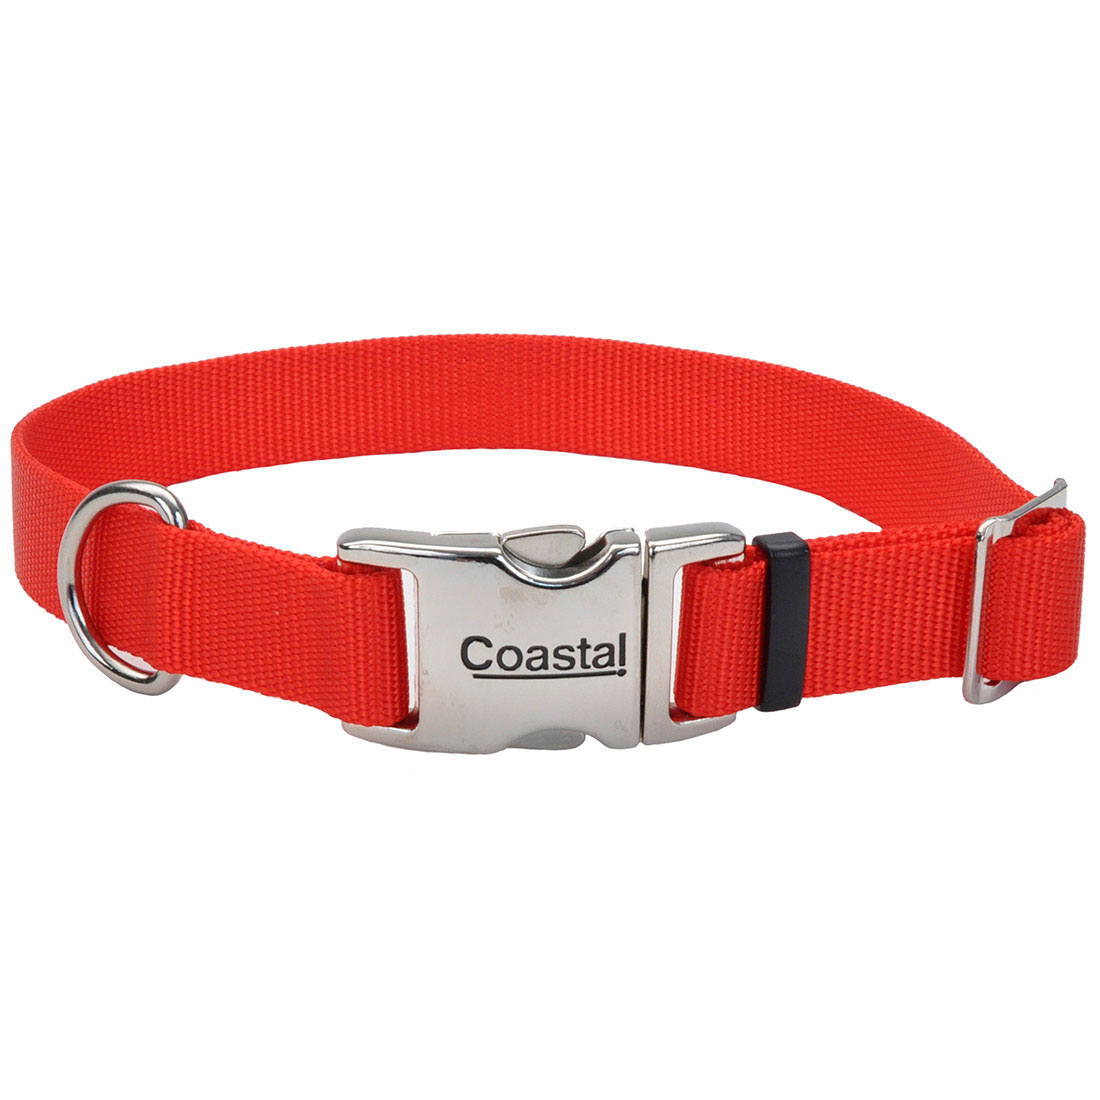 Coastal Adjustable Collar with Metal Buckle for Dogs, Pink Bright, 1-in x 18-26-in